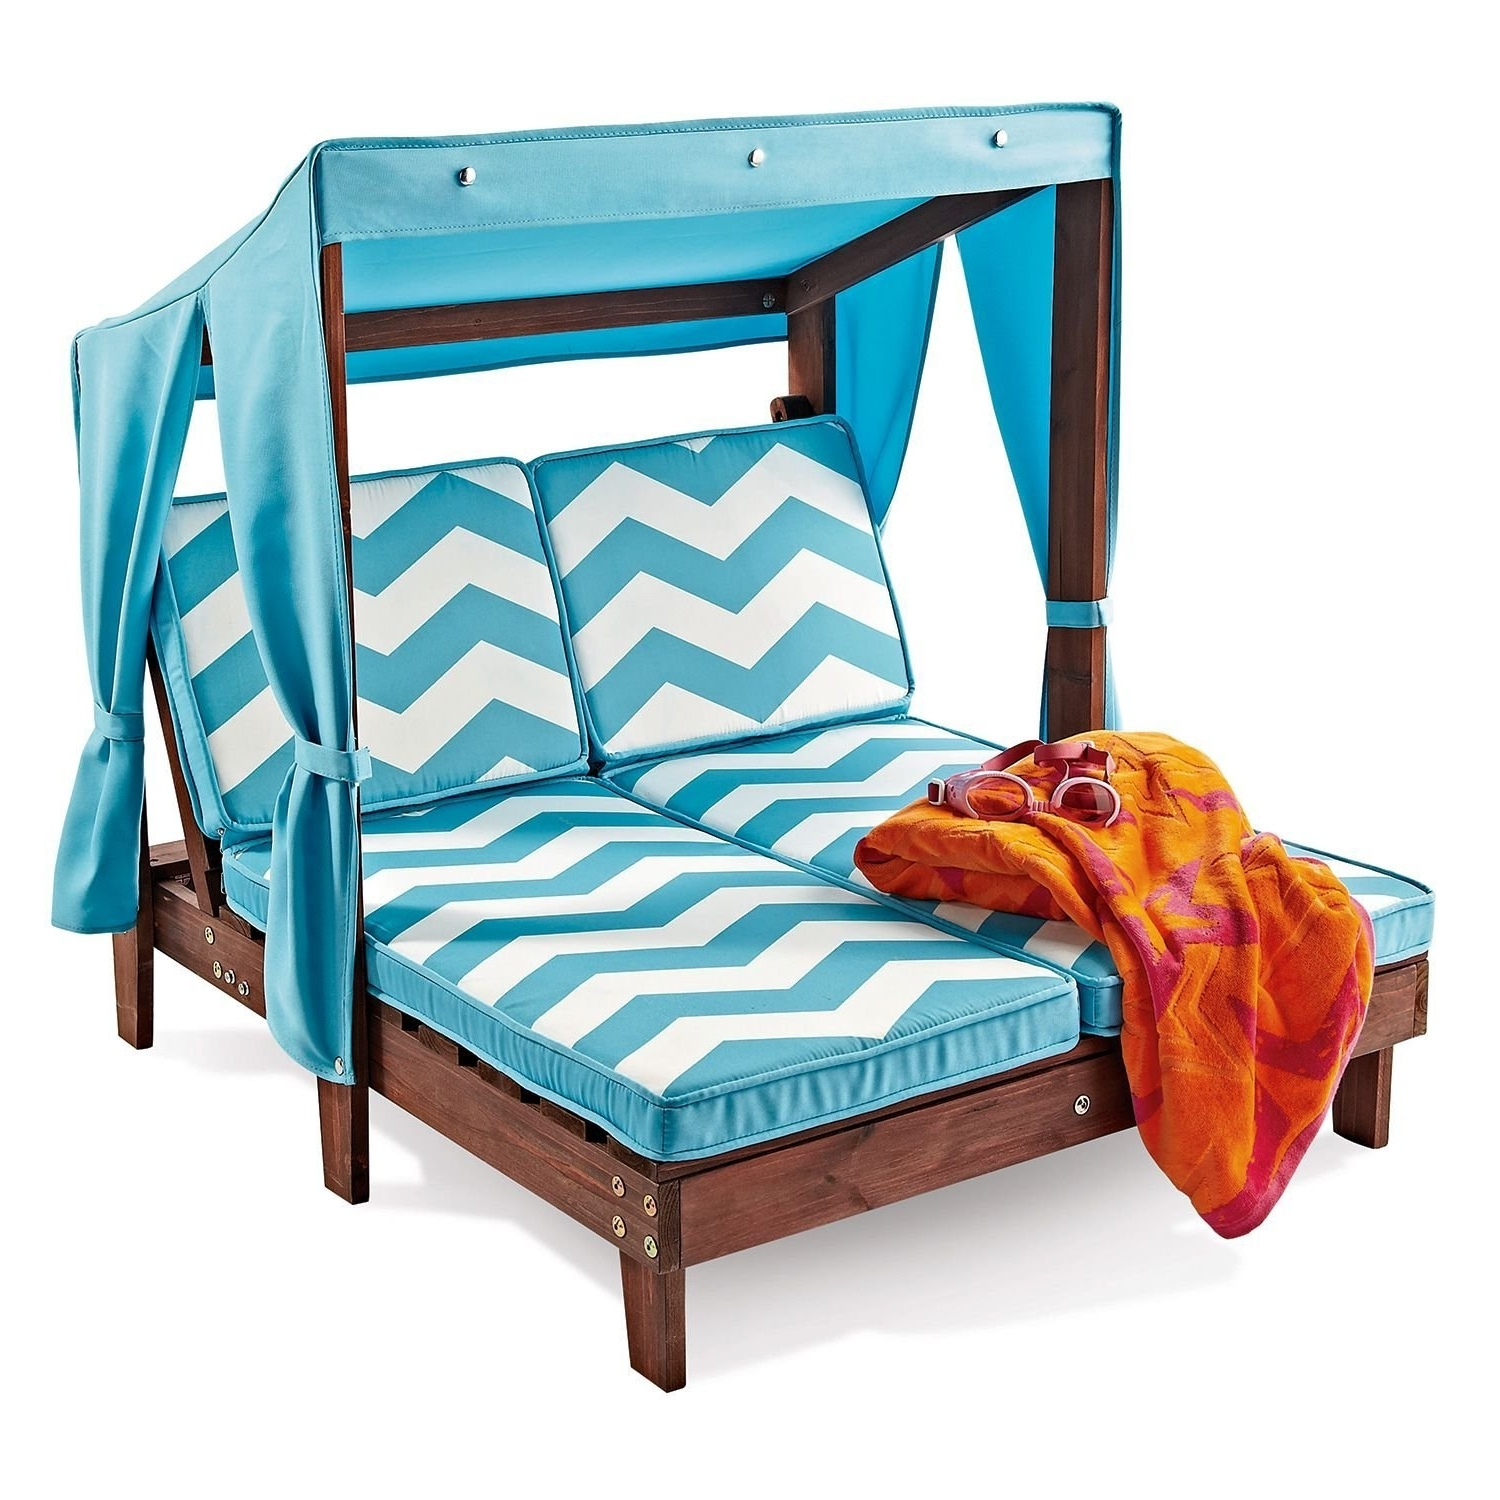 Widely Used Kidkraft Chaise Lounges With Regard To Amazon: Outdoor Kid's Double Chaise Lounge Chair W/ Canopy (View 10 of 15)